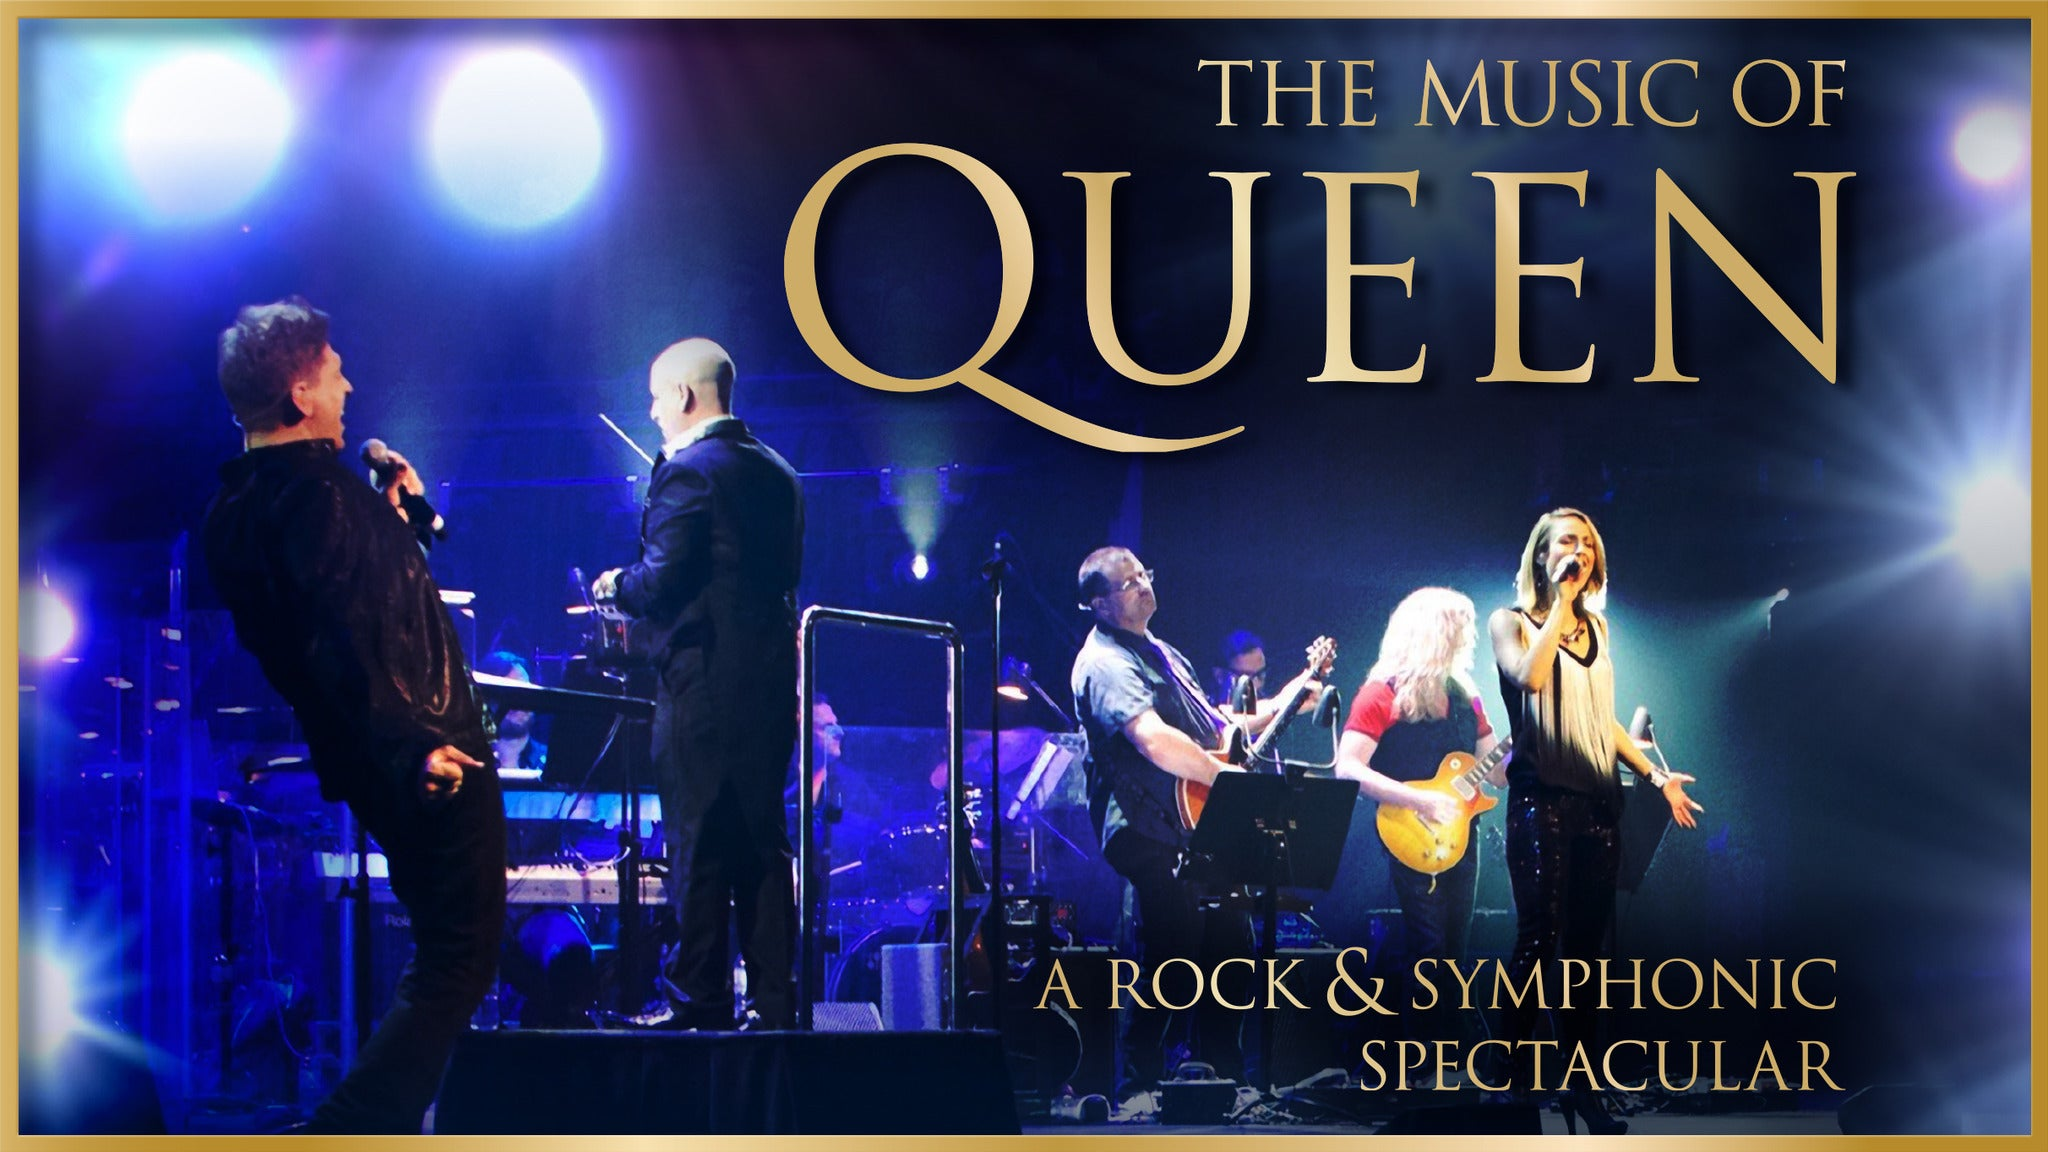 Philly POPS Presents: The Music of Queen